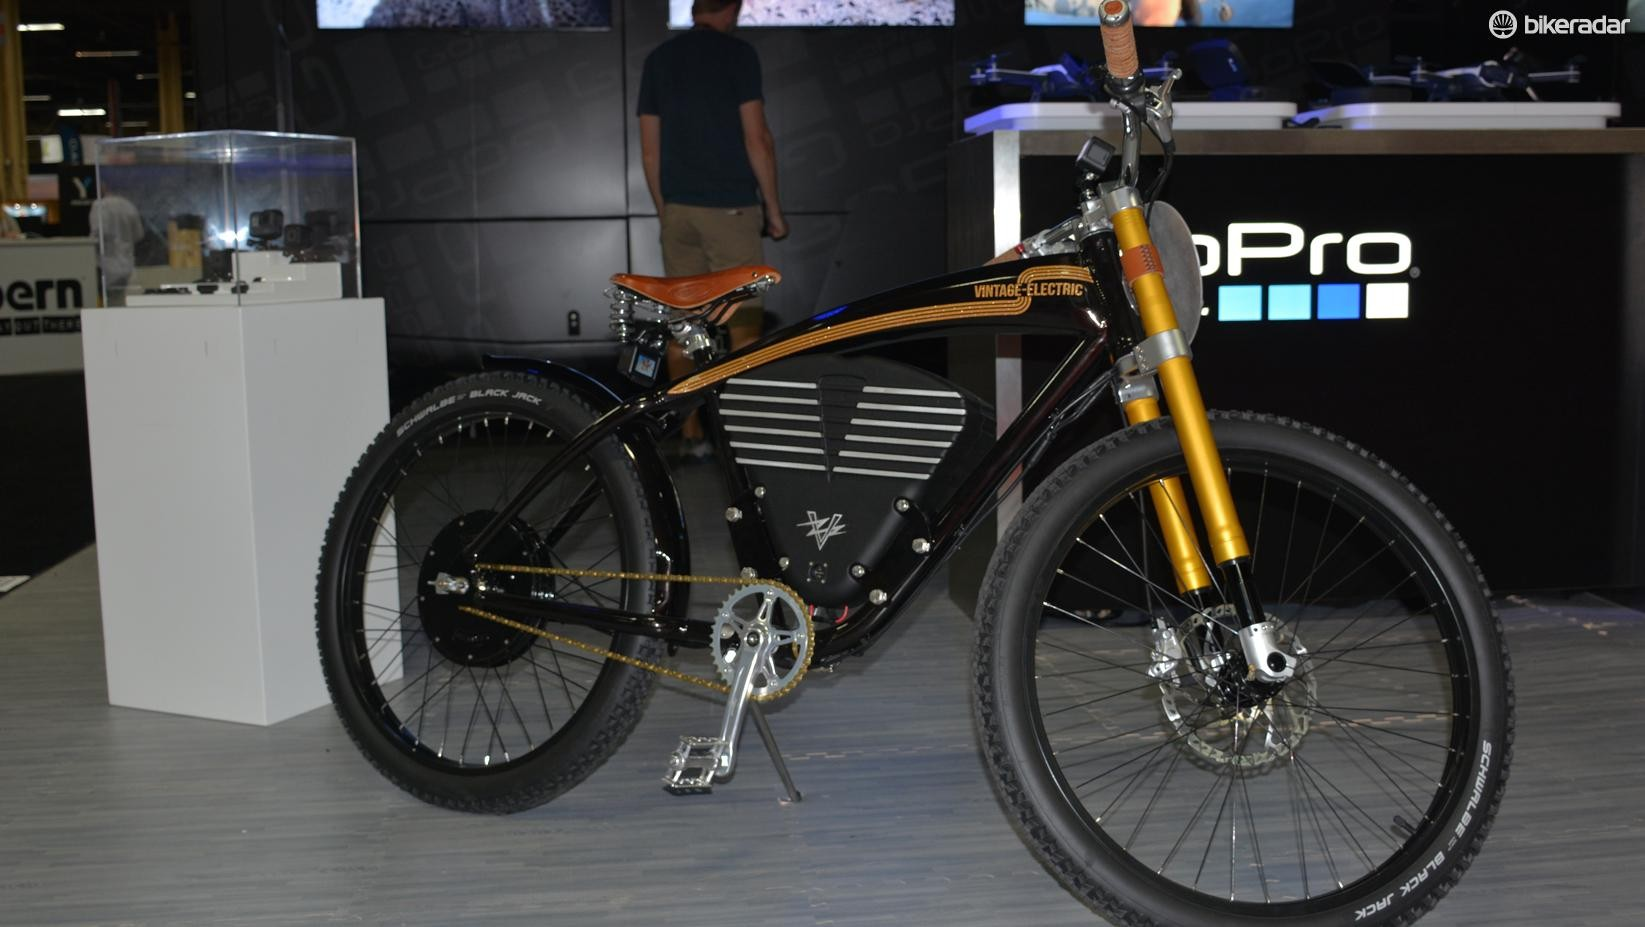 Vintage Electric makes a range of stylish e-bikes that reach back to mid-20th century motorcycles